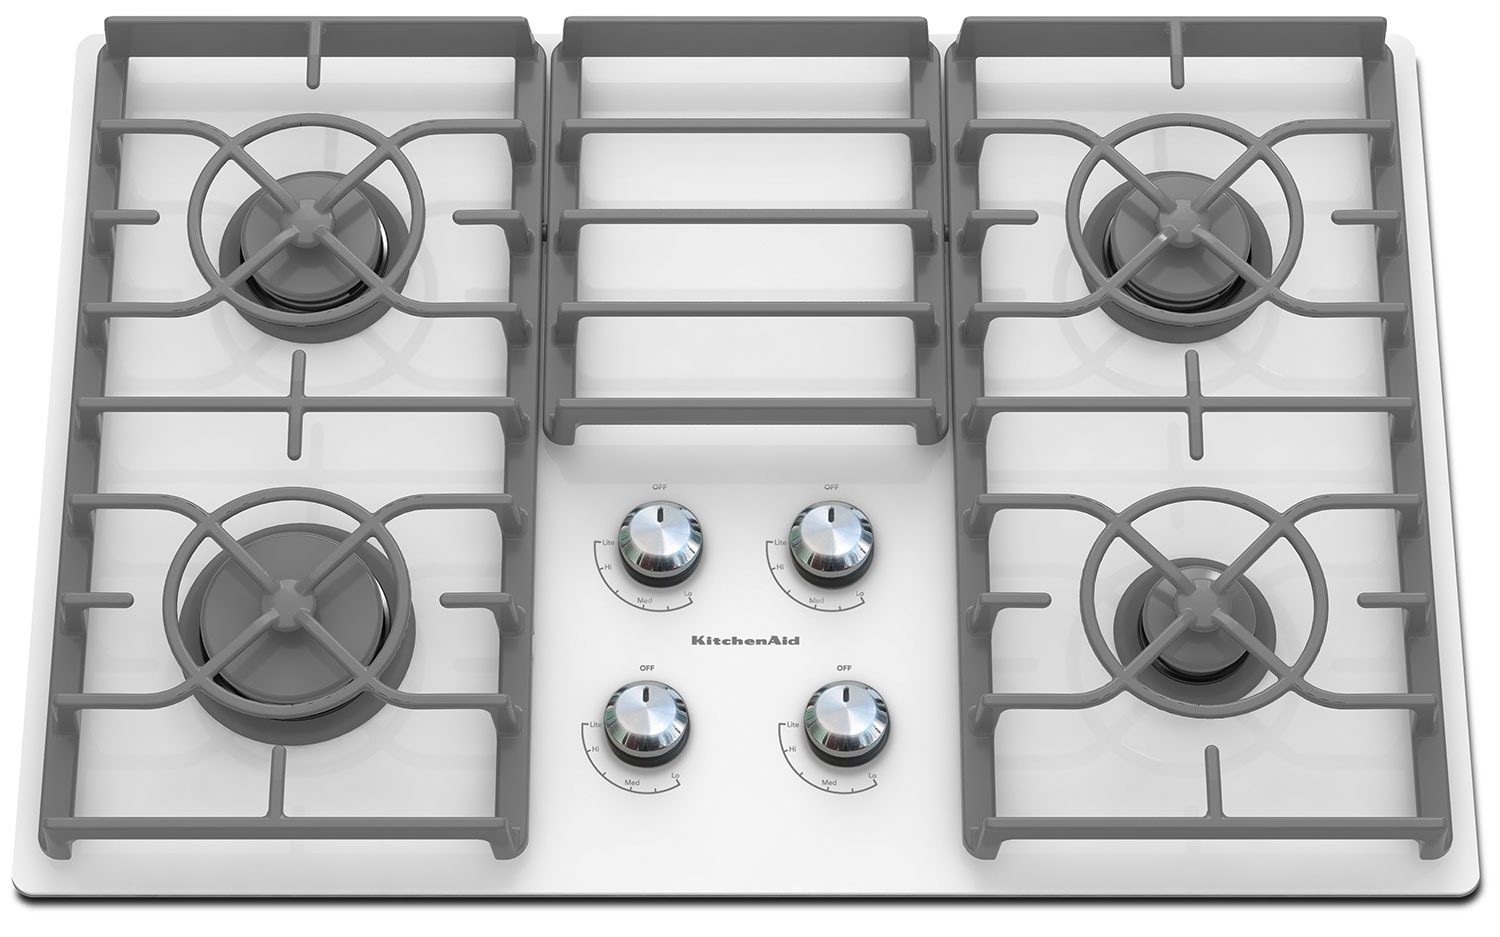 Cooking Products - KitchenAid Gas Cooktop KGCC506RWW